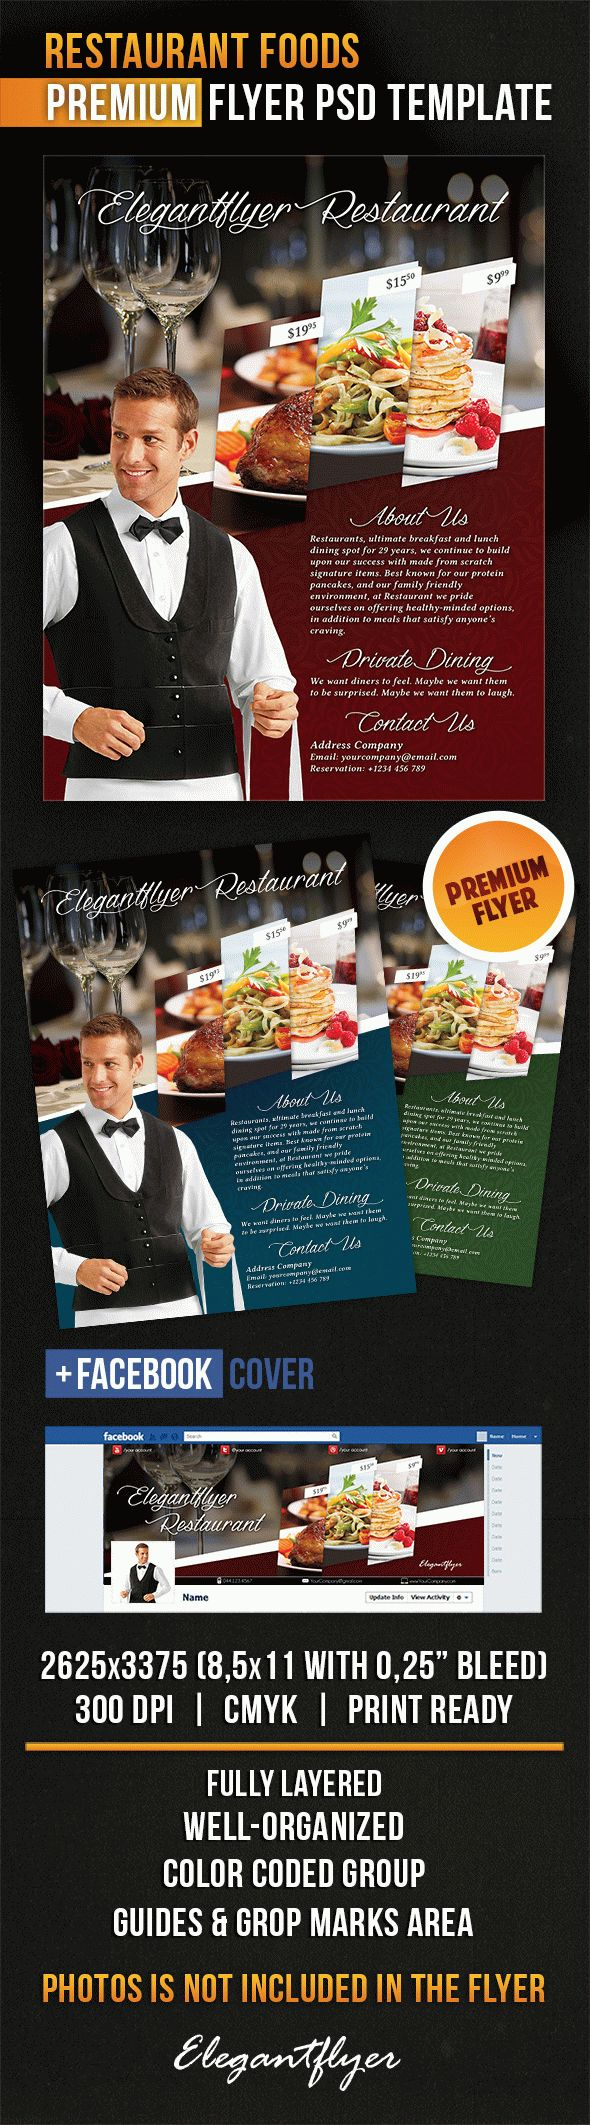 Restaurant Foods – Flyer PSD Template + Facebook Cover